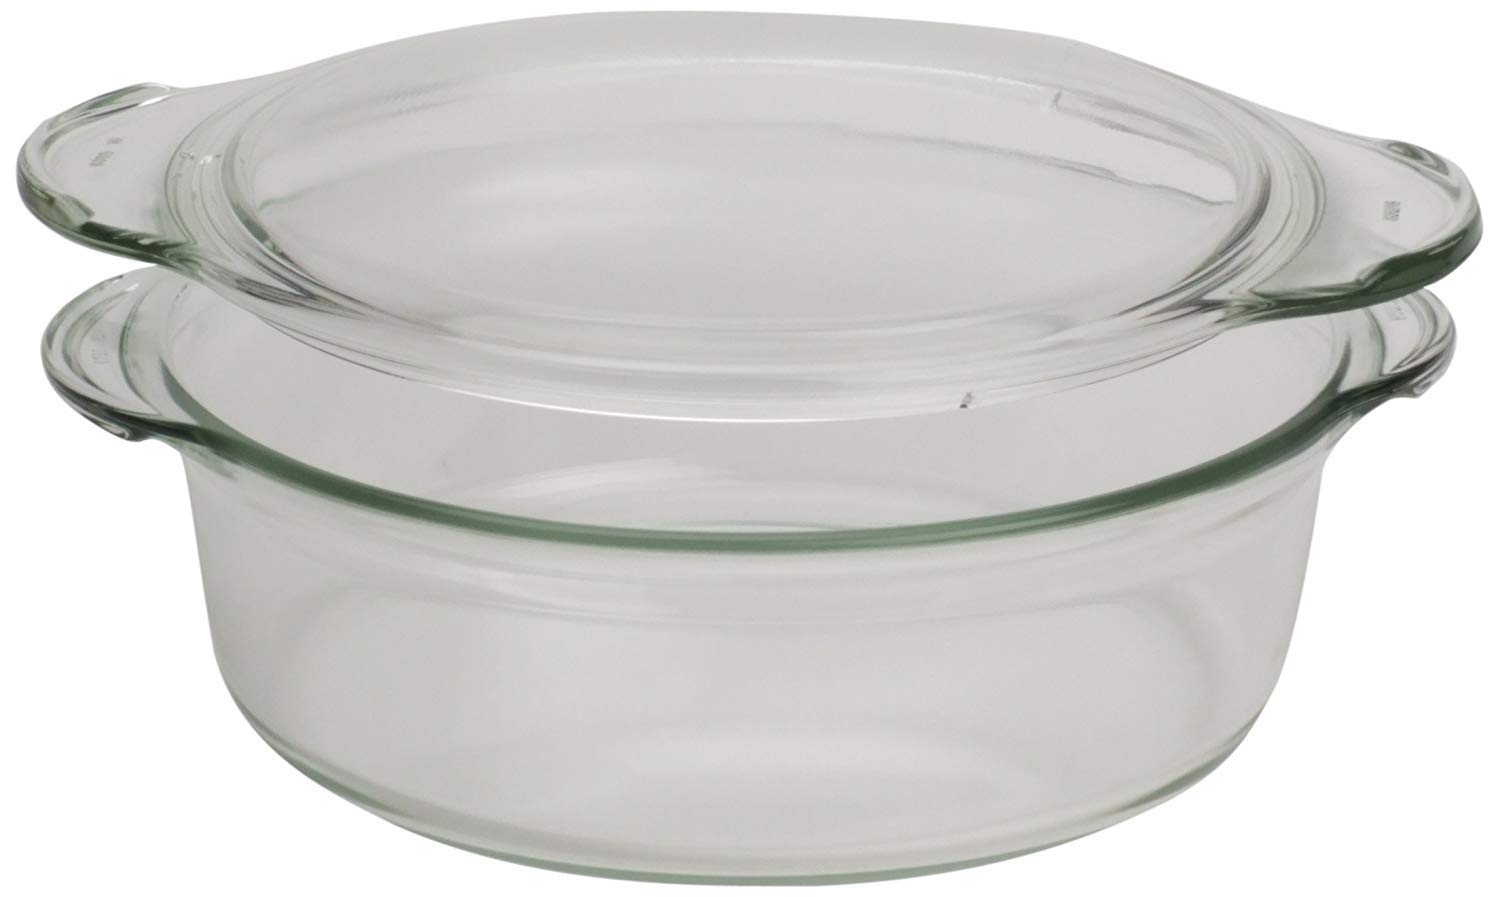 Clear Round Glass Casserole by Simax | Deep Dish, With Lid, Heat, Cold and Shock Proof, Made in Europe, 1.5 Quart